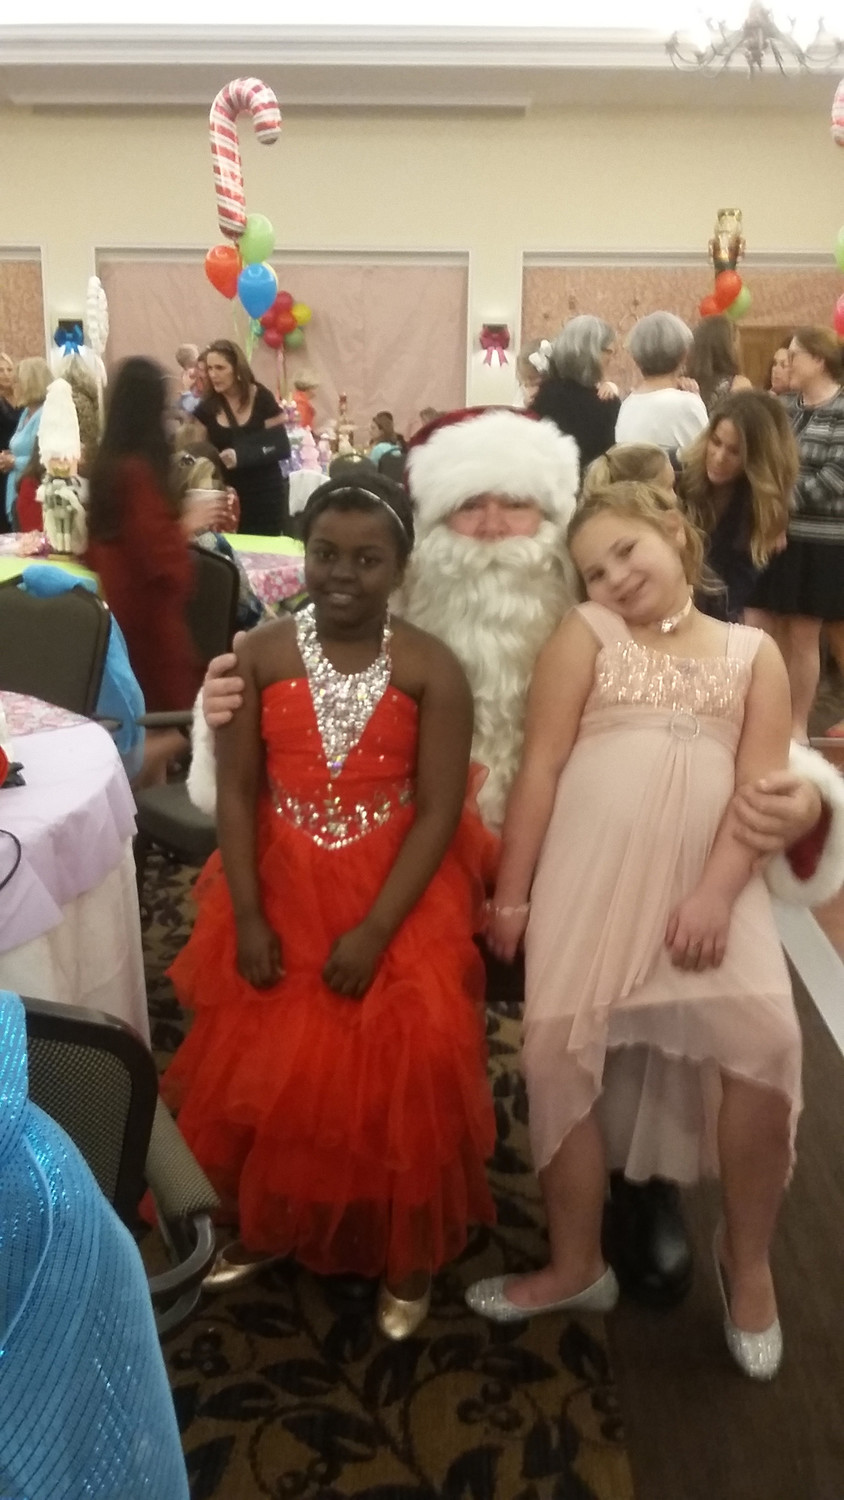 This year's guests of honor, Lunish Vurnet (left) and Cassidy Chergi, sit with Santa before the event.